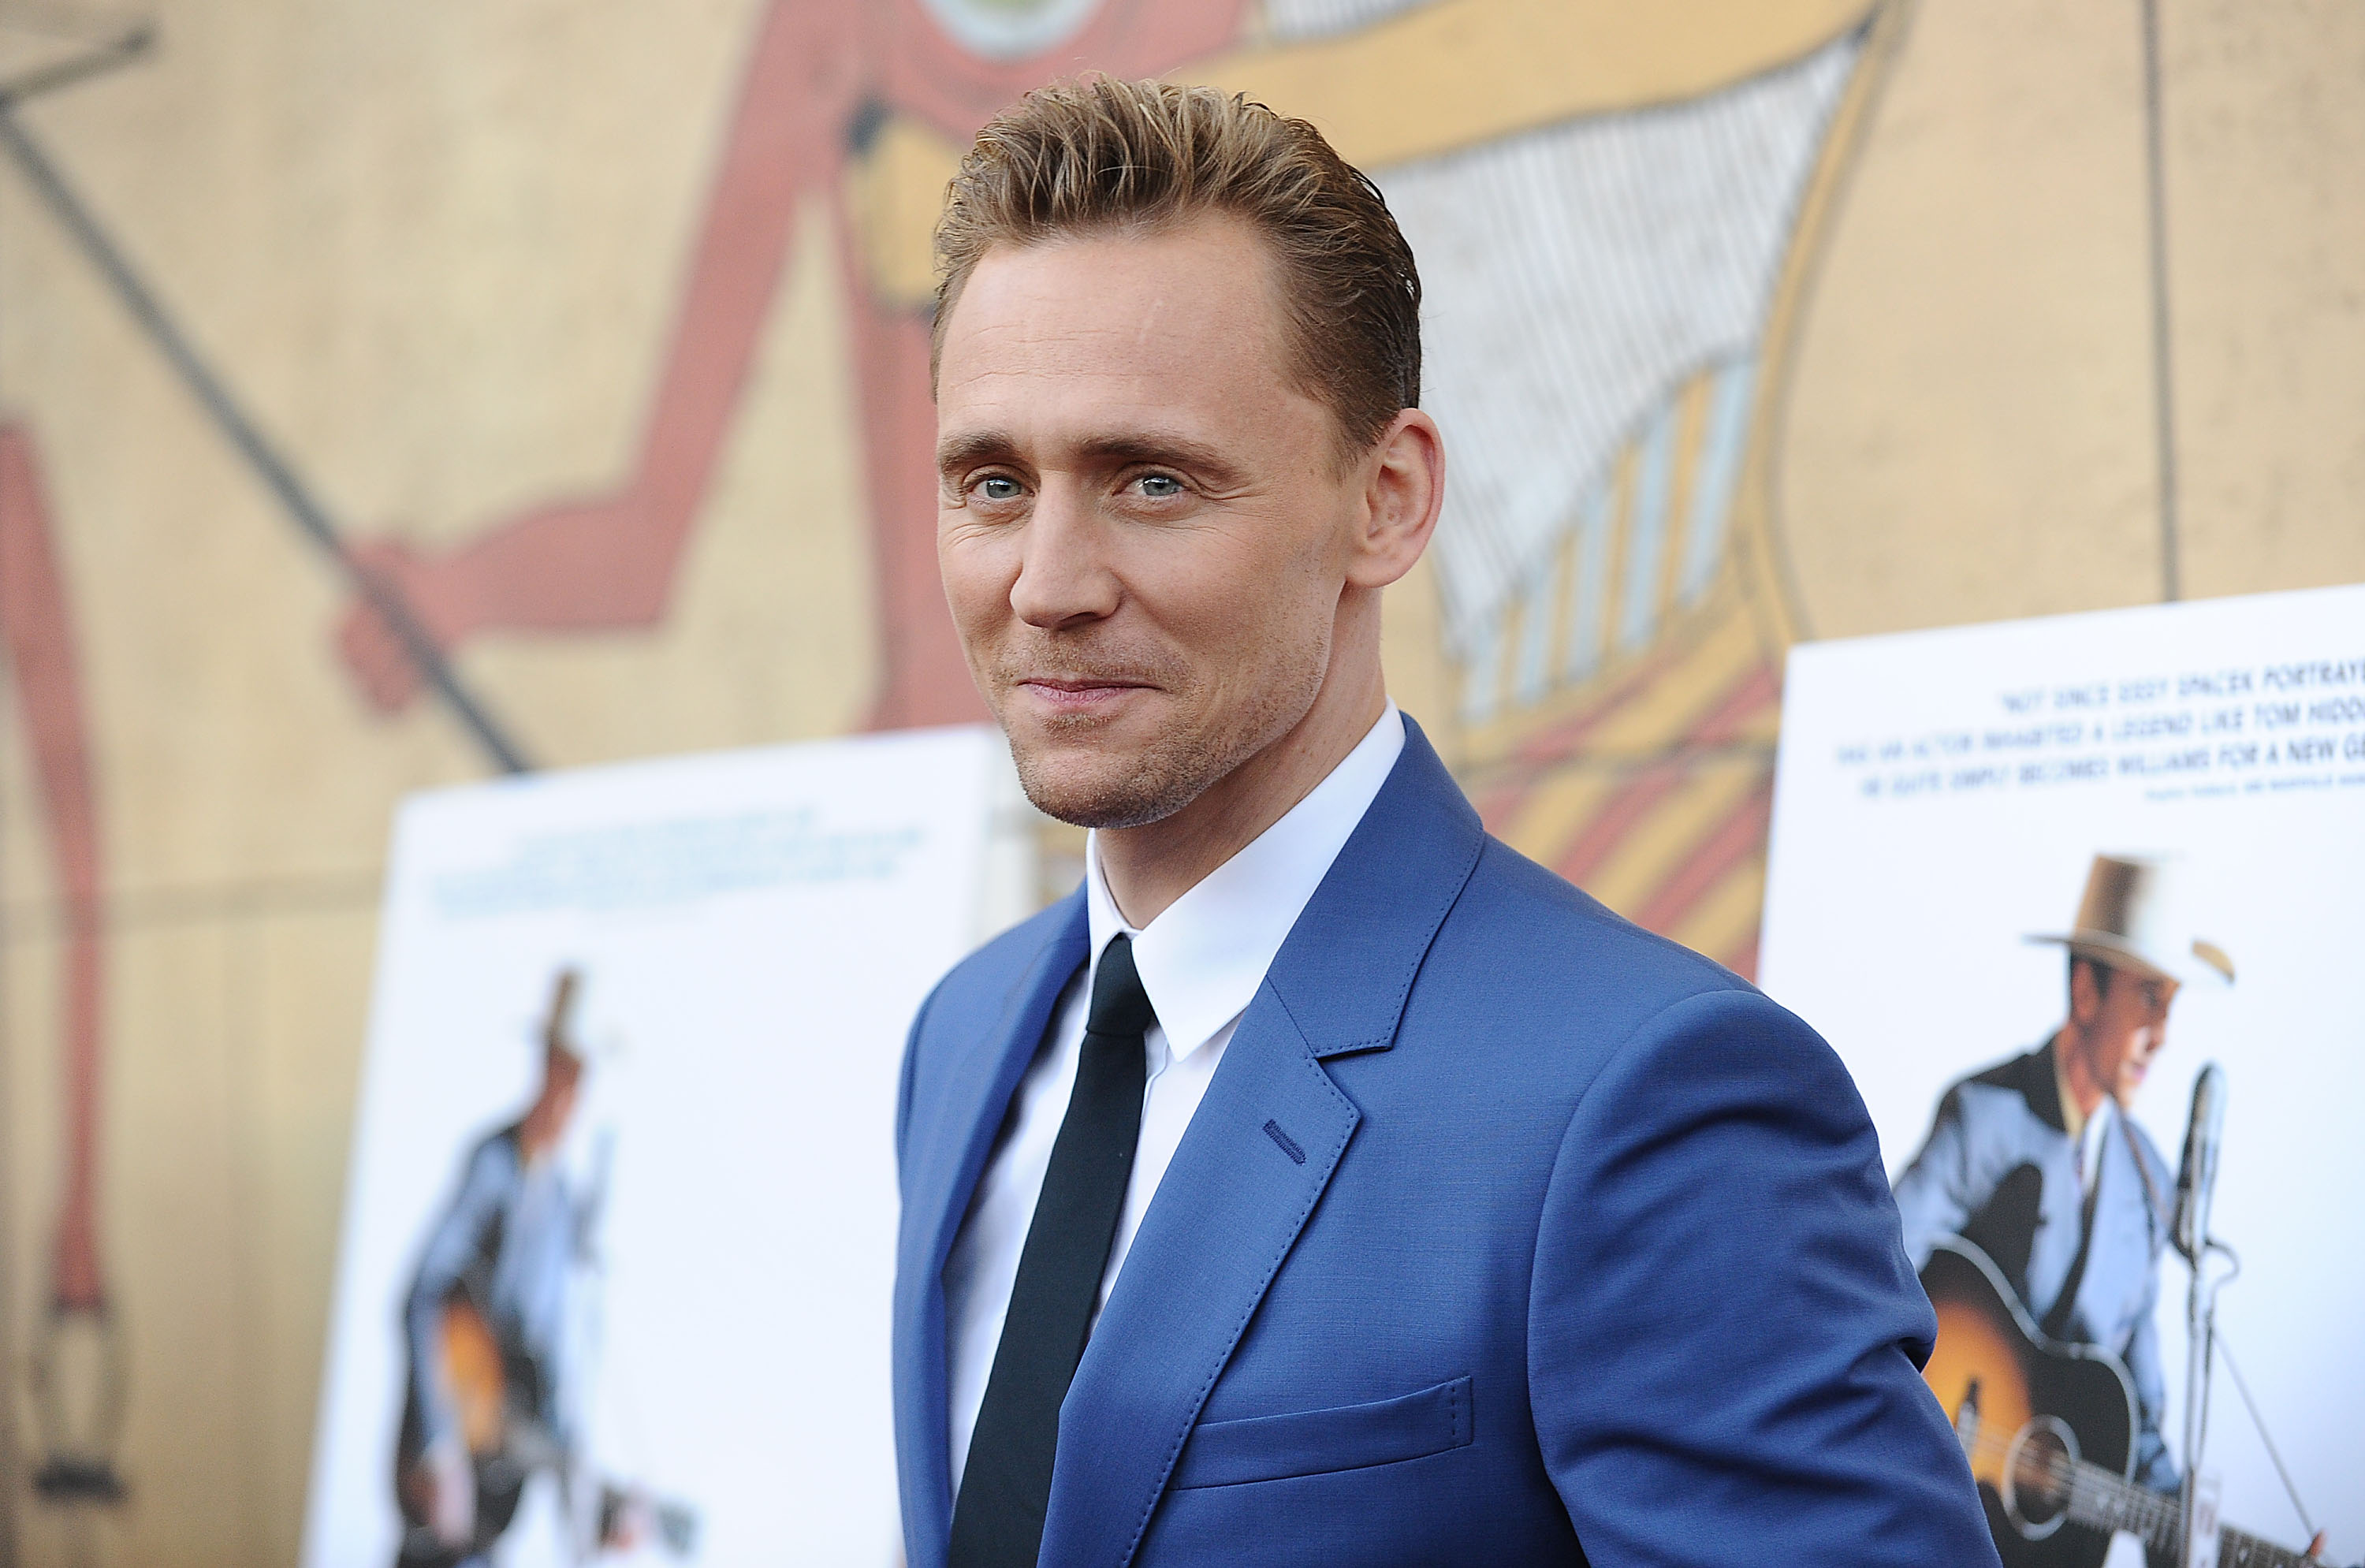 Tom-Hiddleston-Height-Weight-Age-Size-Affairs-Body-Stats